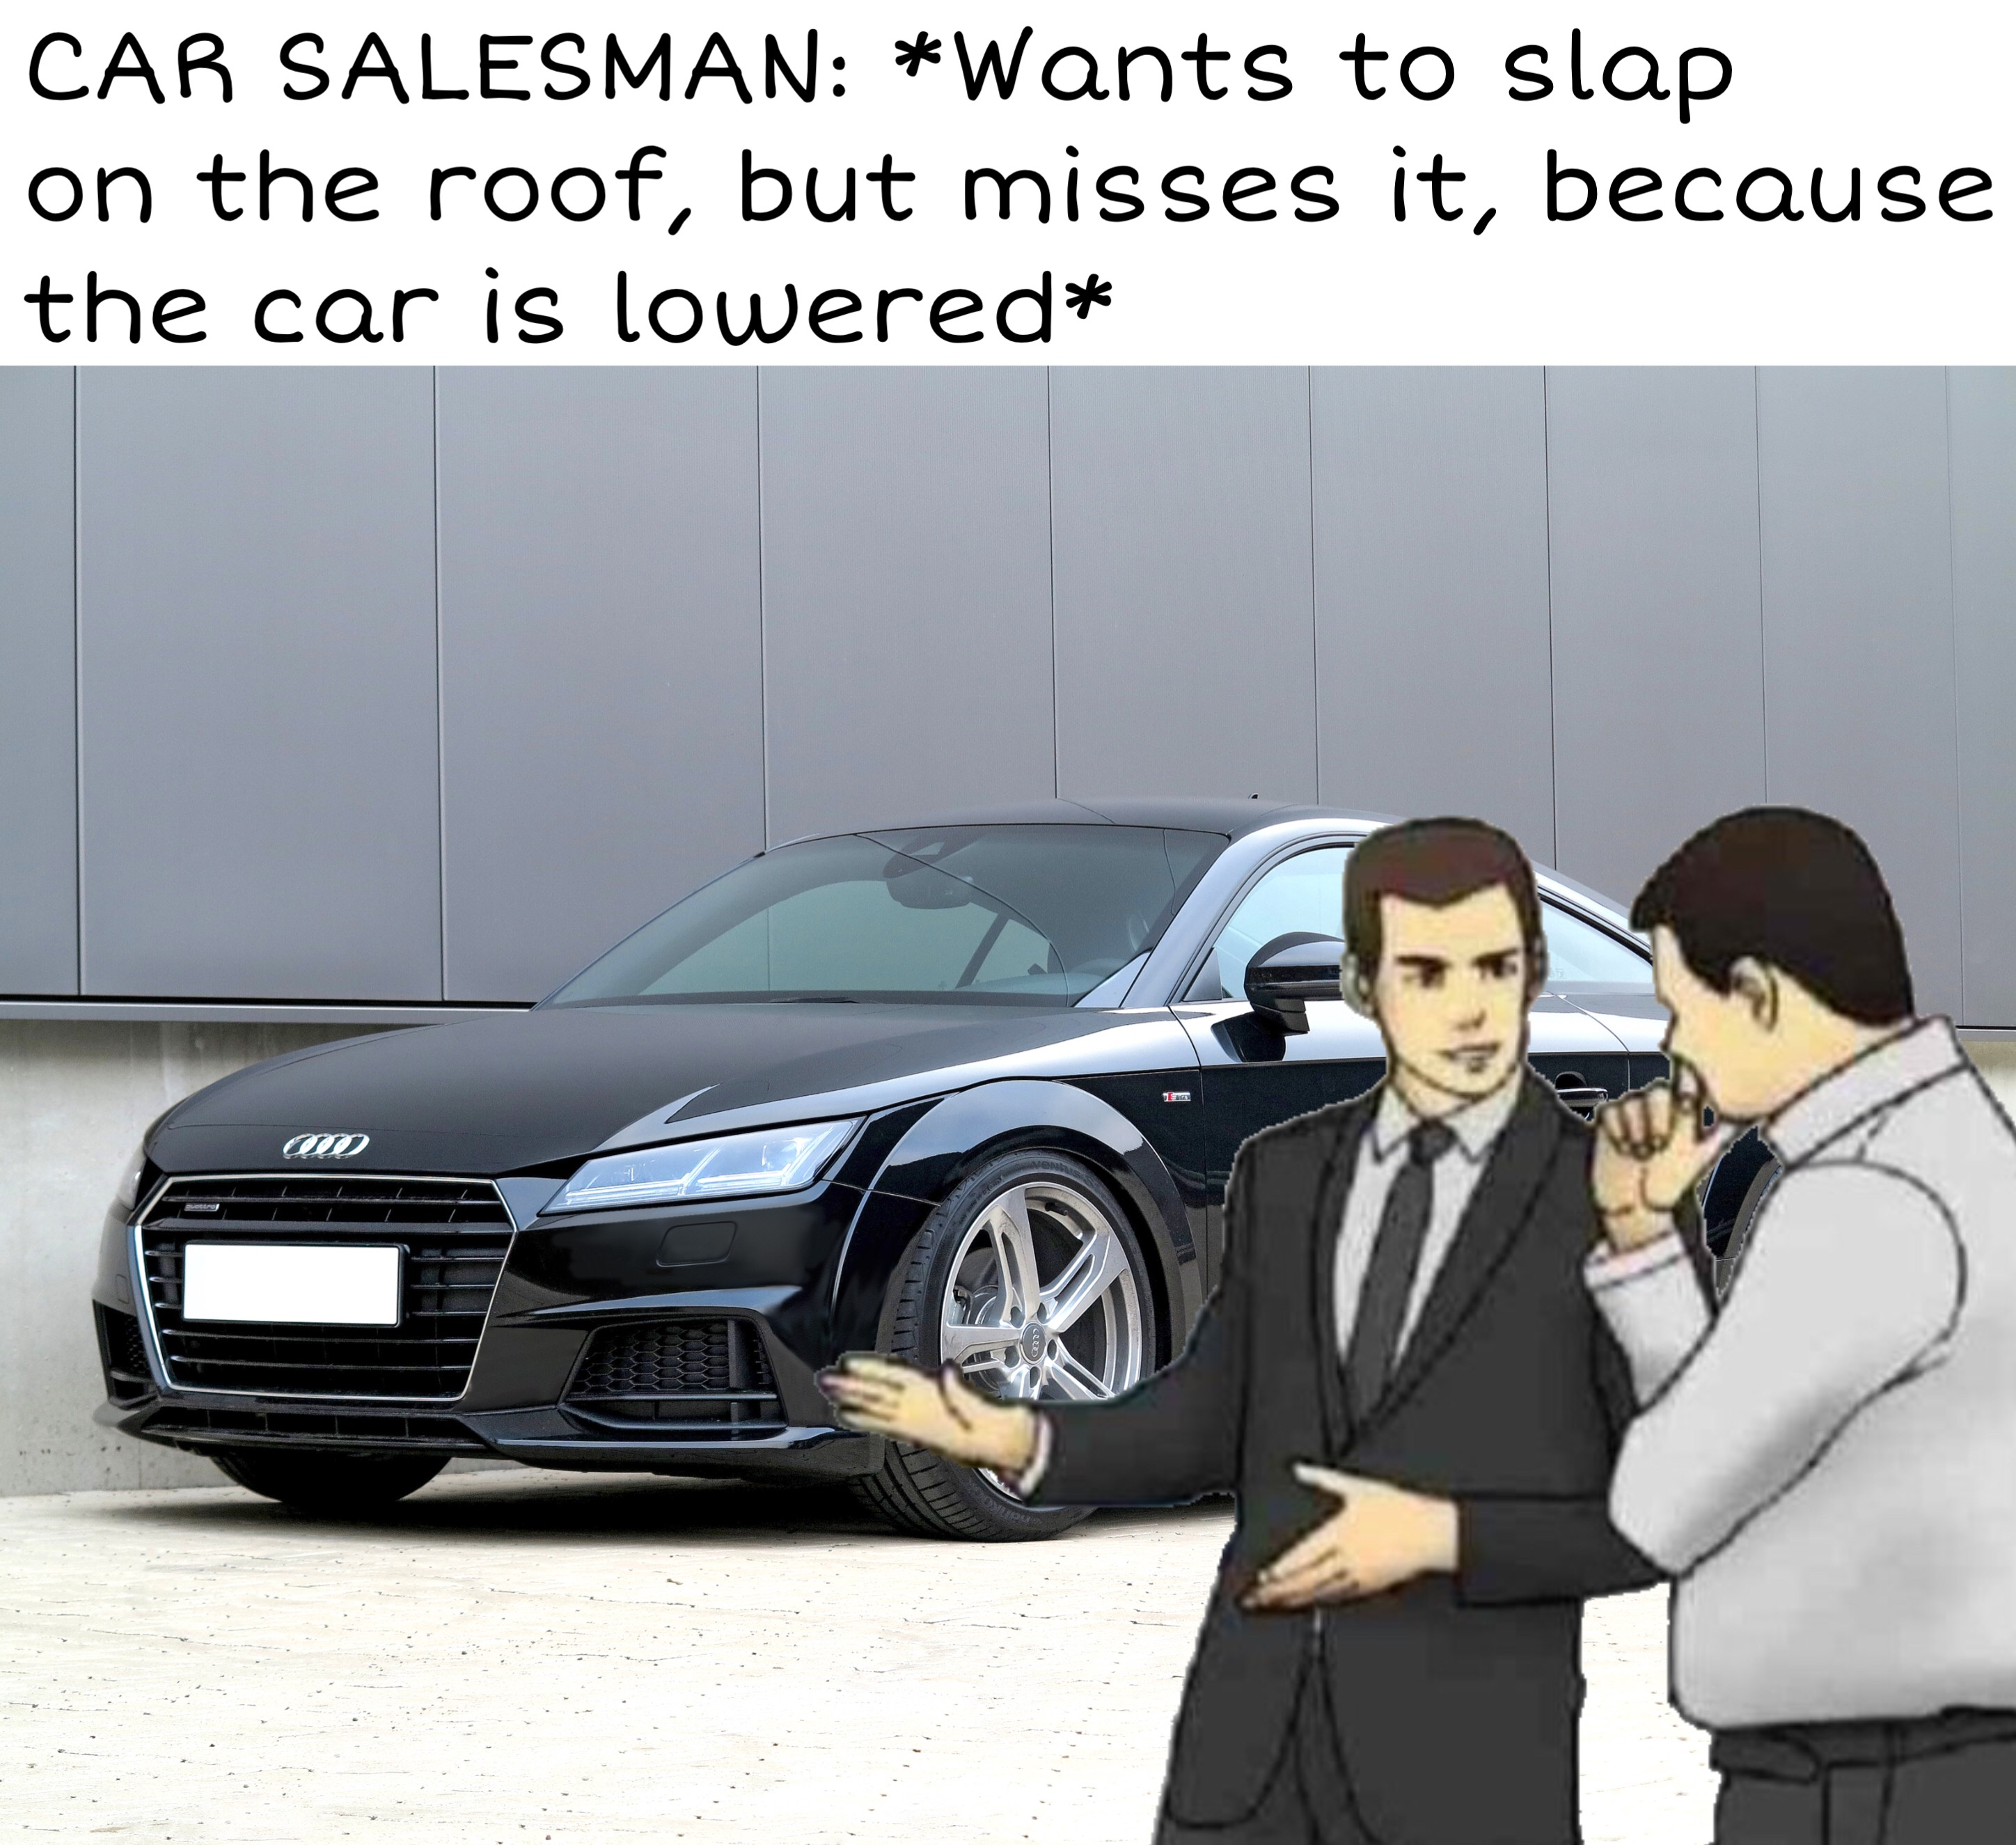 The tt is too lowered for the car salesman memes